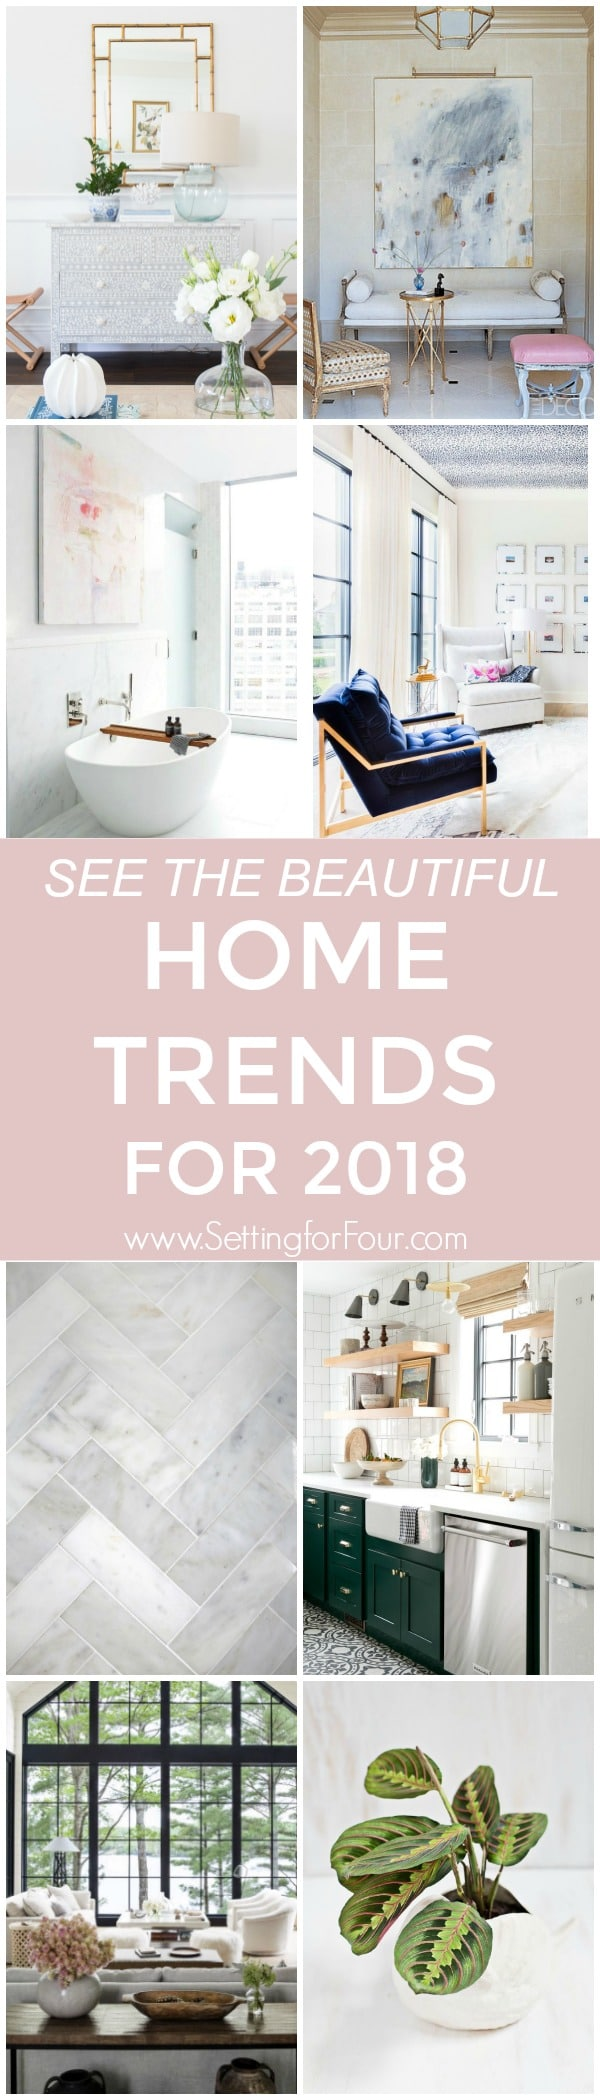 Home Trends For 2018 In Design And Decor Setting For Four